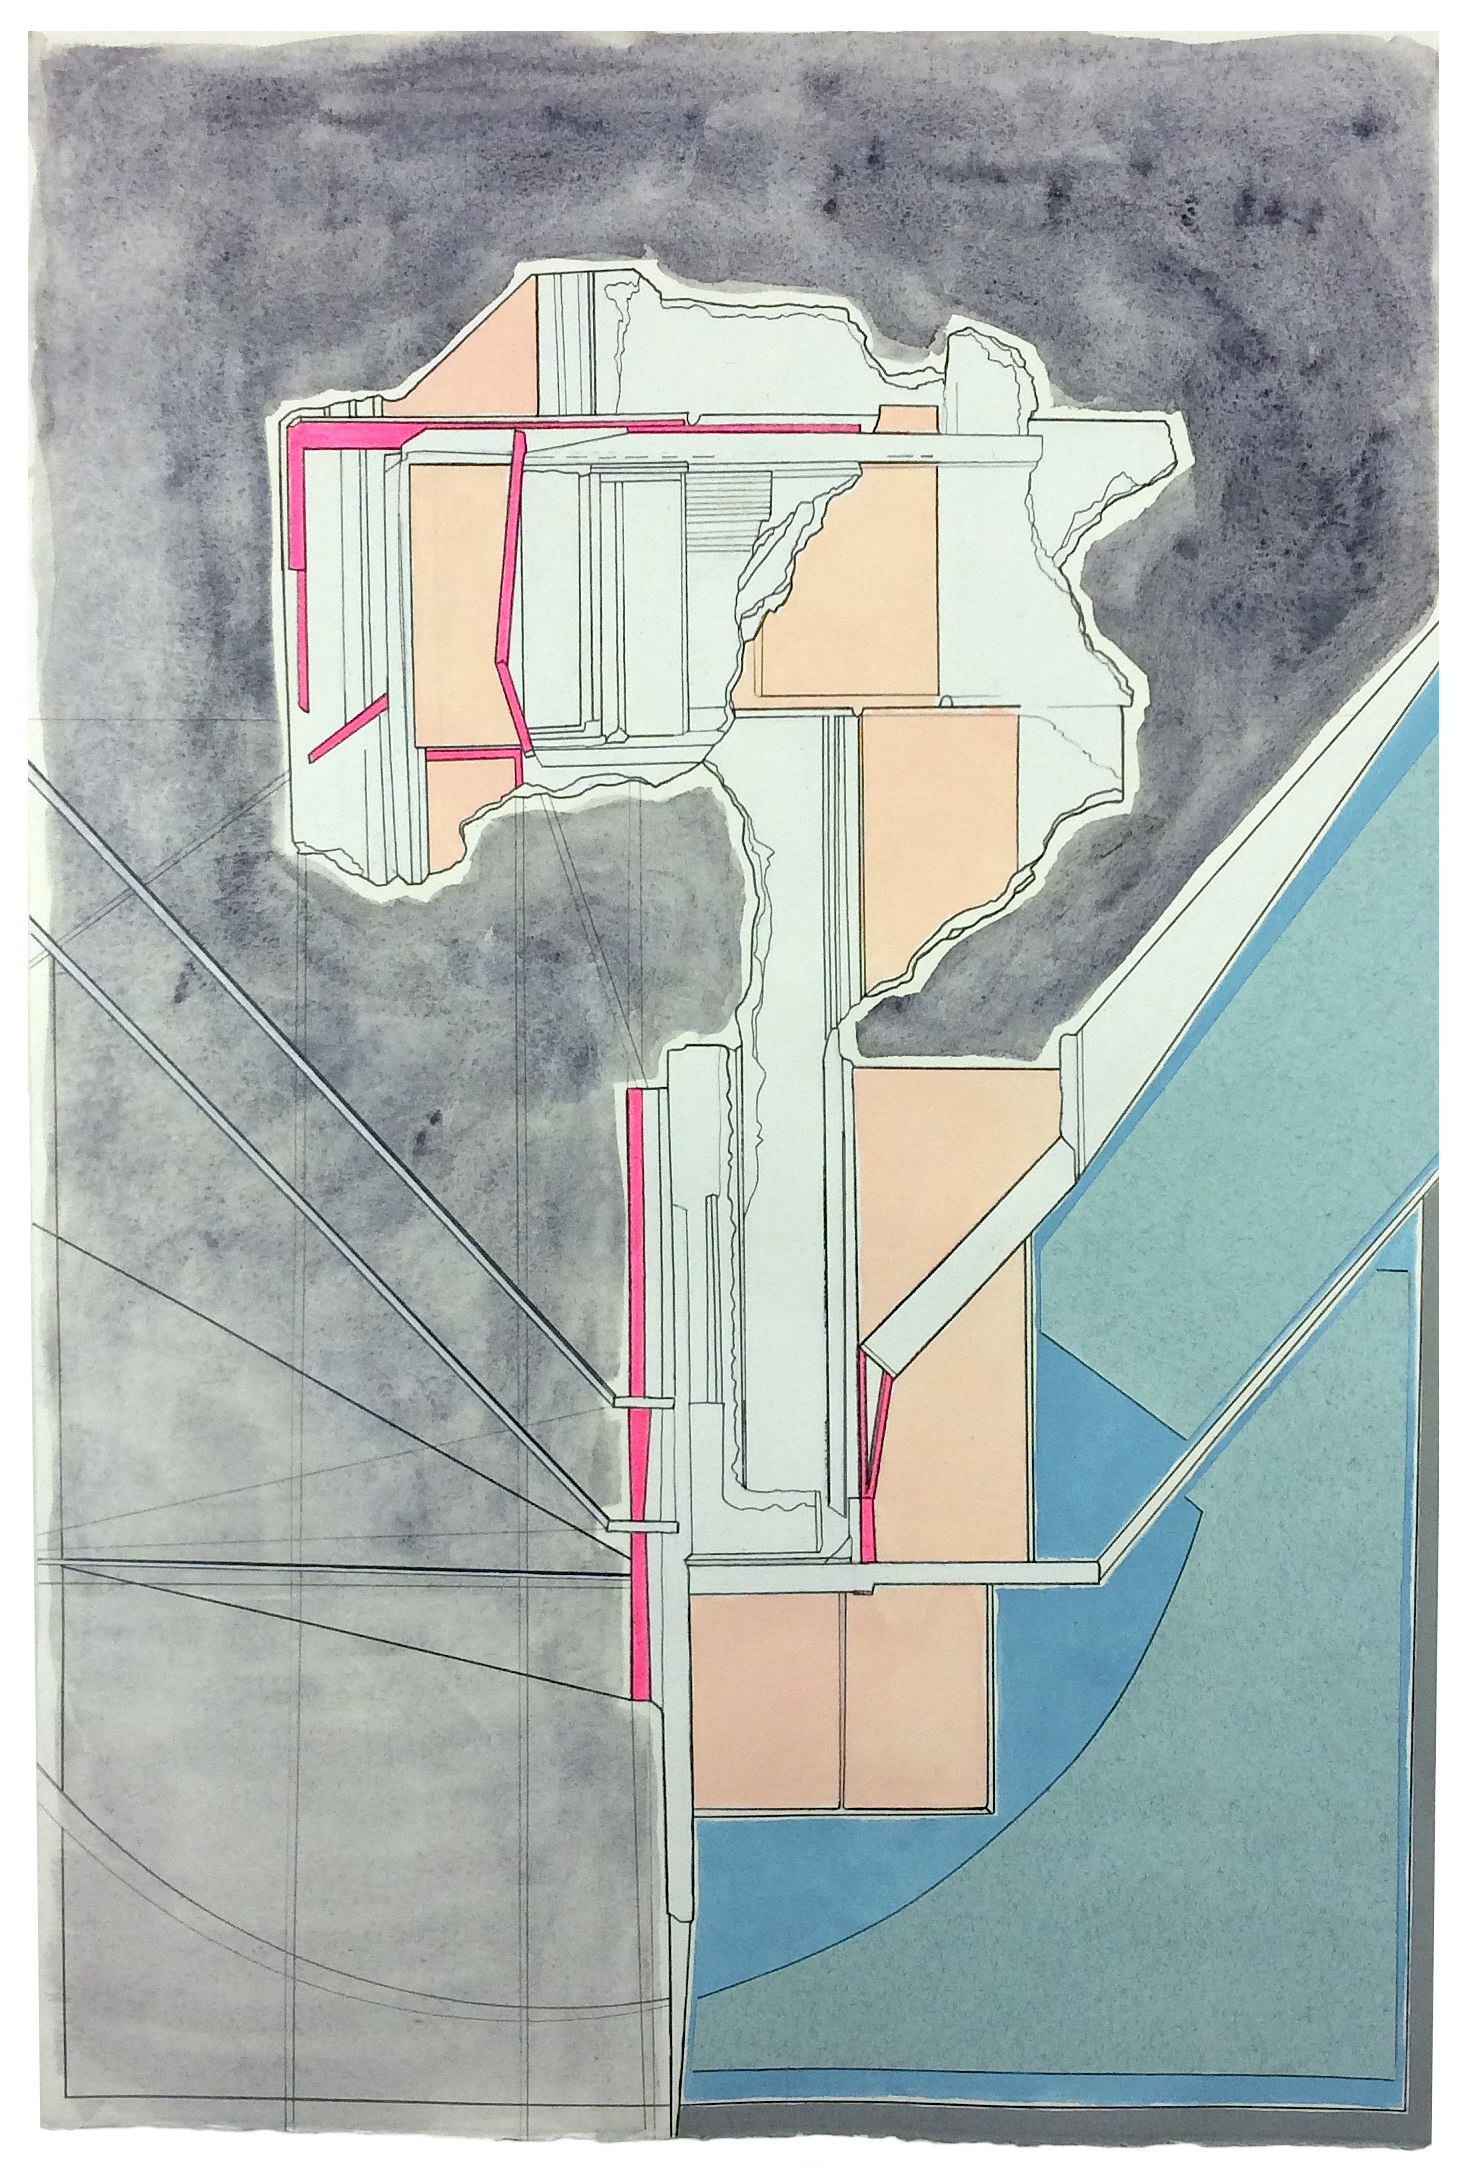 Receiver  , 2015  watercolor, gouache, acrylic, marker, pencil, collage on paper  22 x 14.75 inches